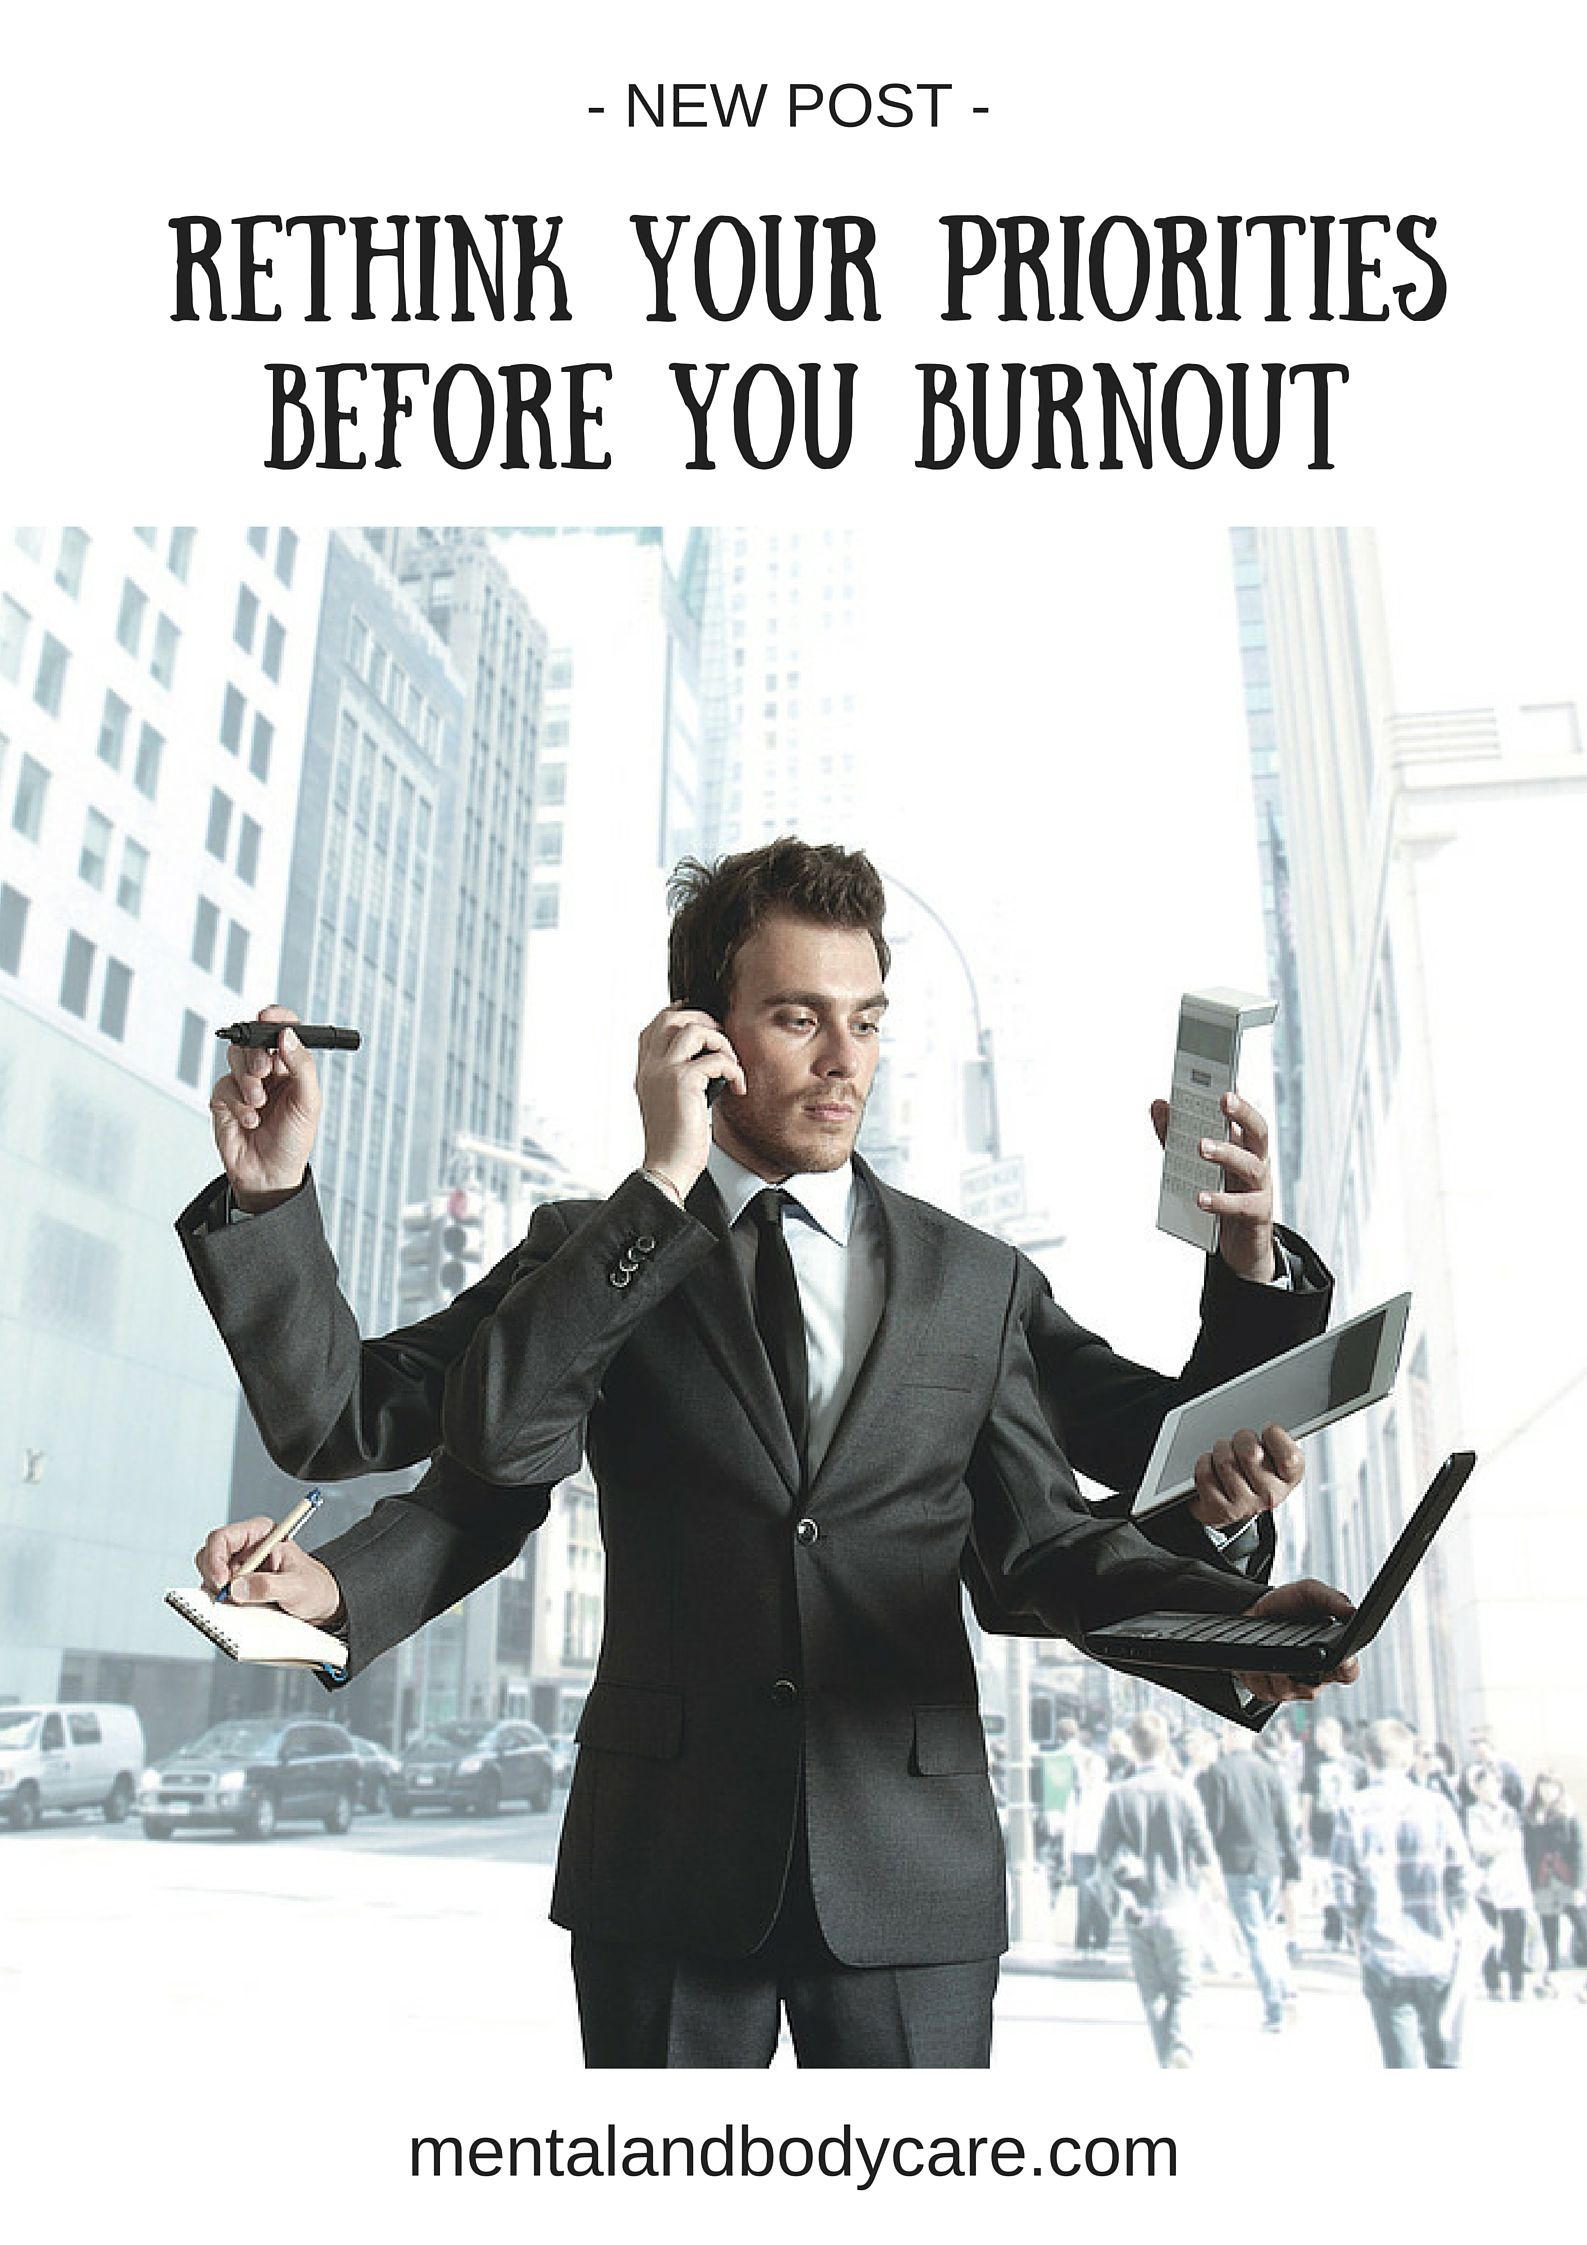 10 Warning Signs That You Are Too Busy